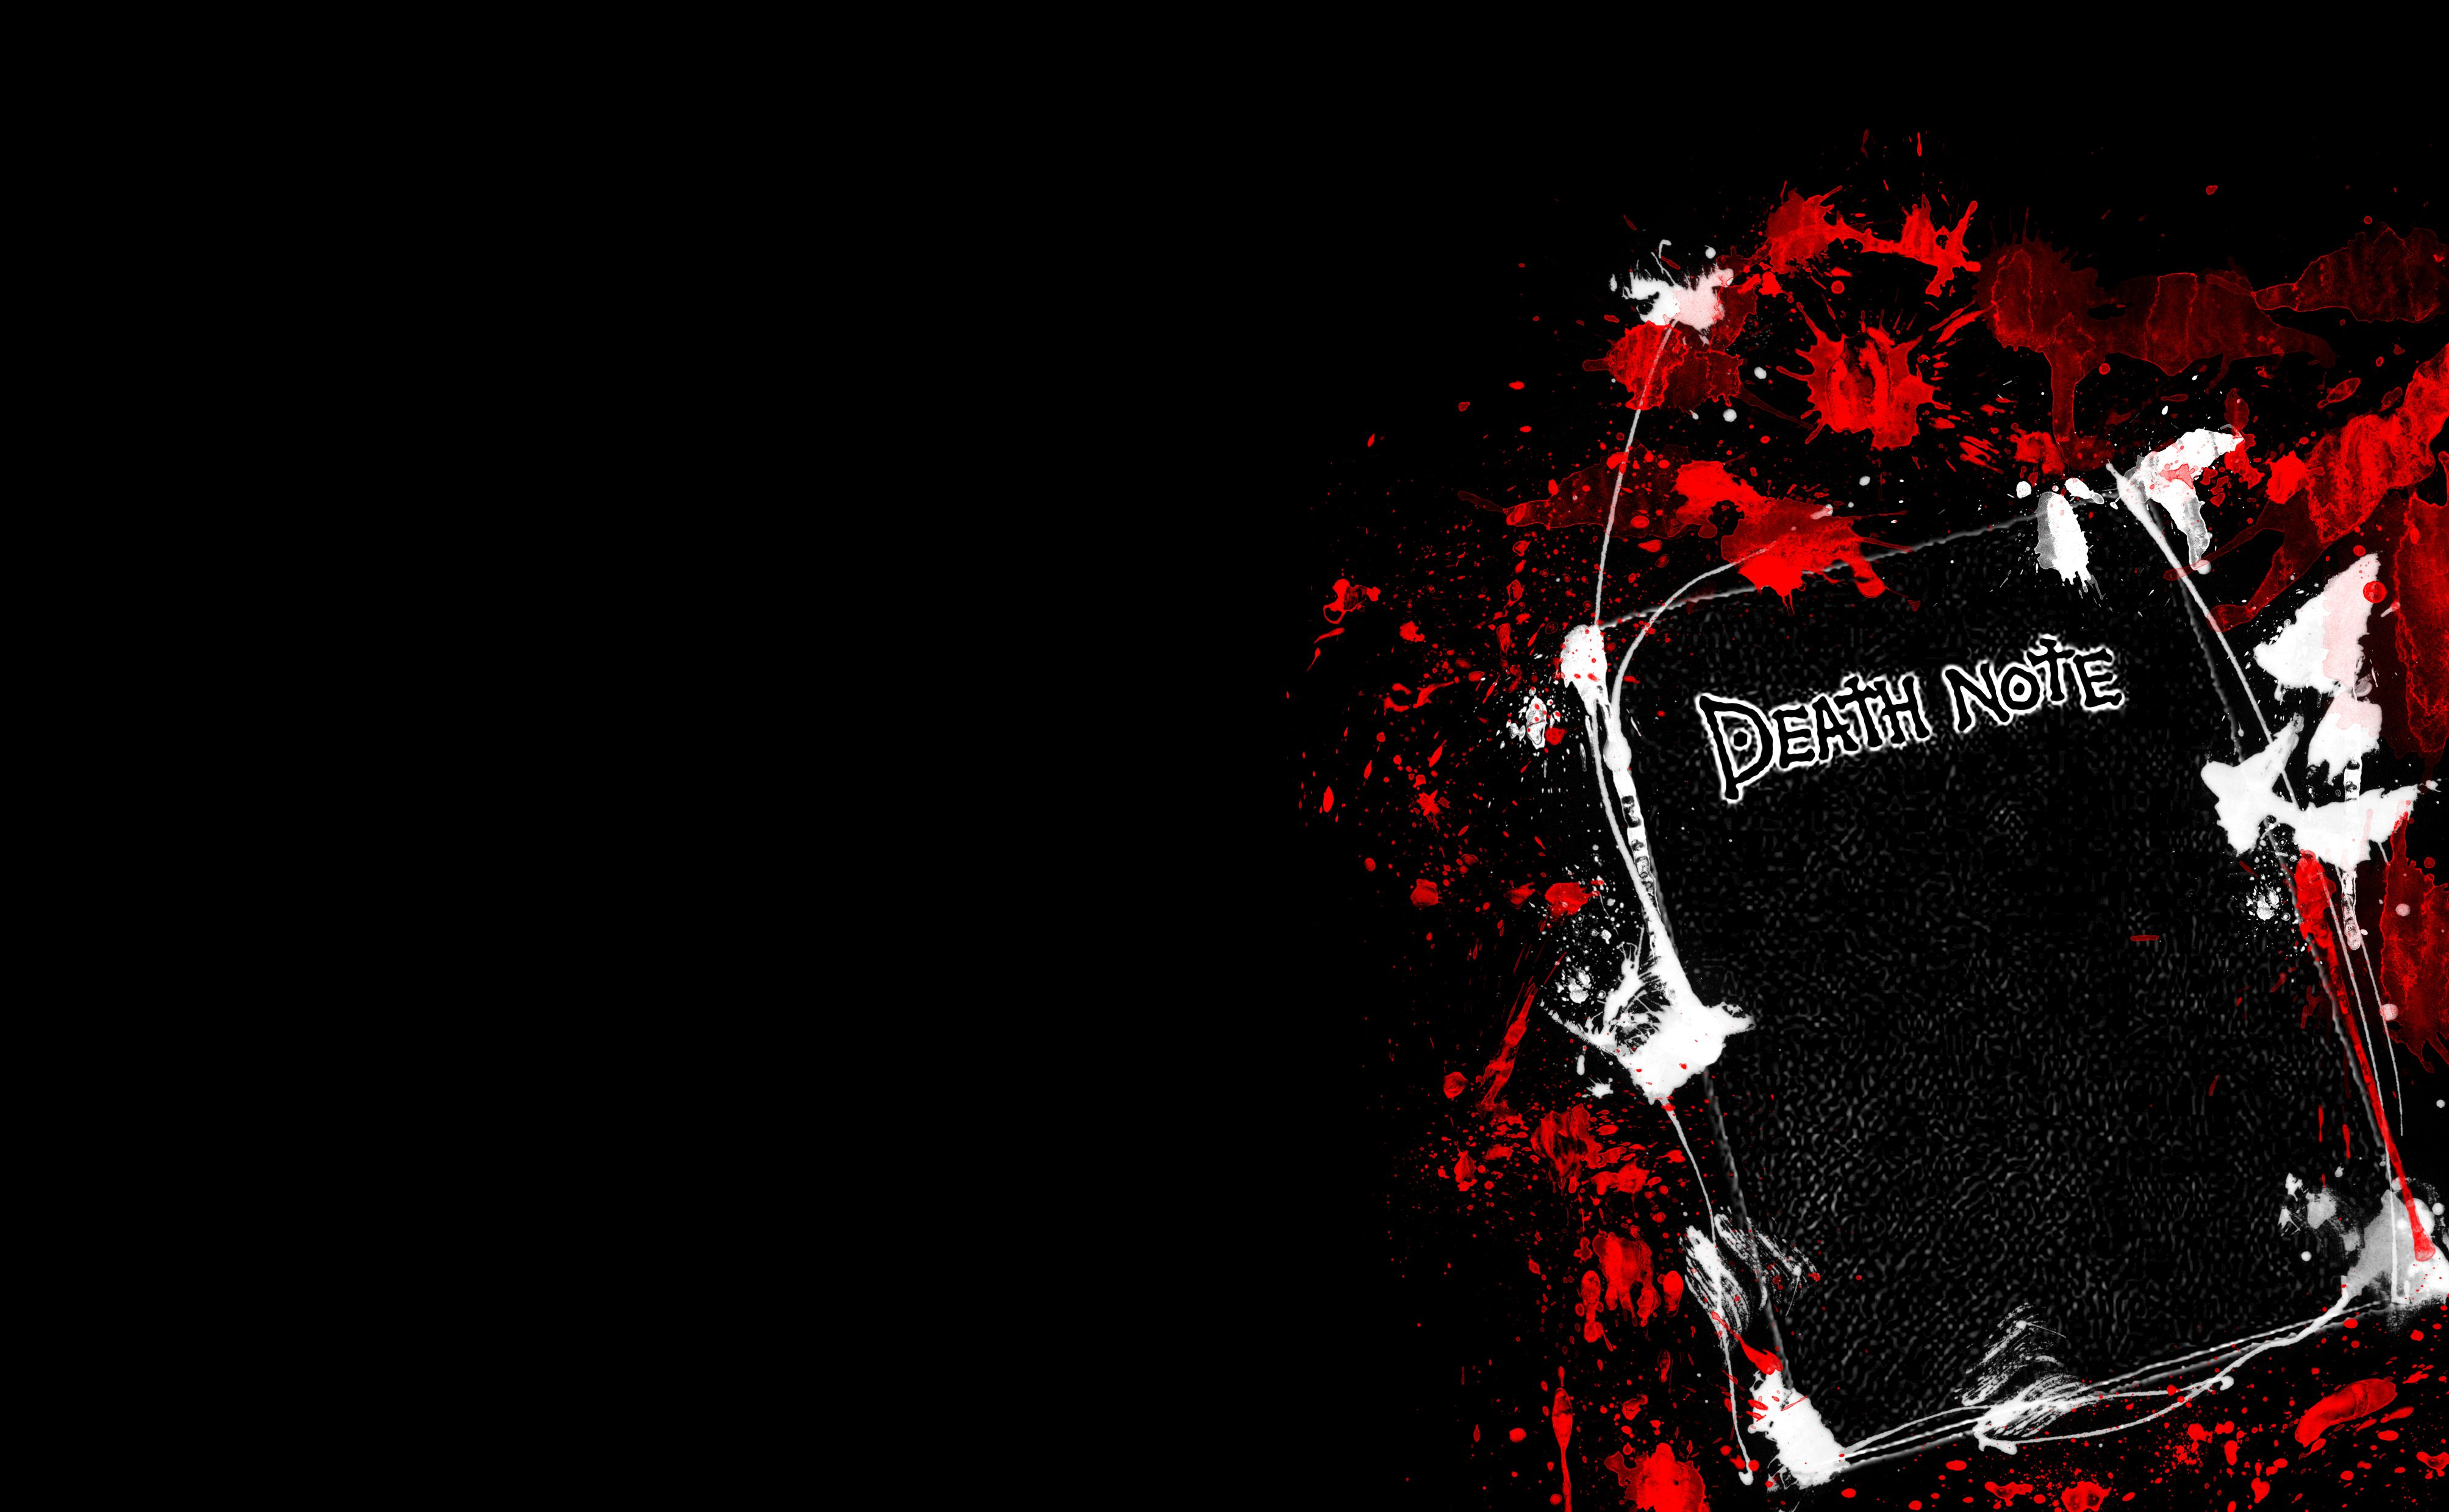 Image for Free Death Note Anime HD Wallpaper 42 Stuff to